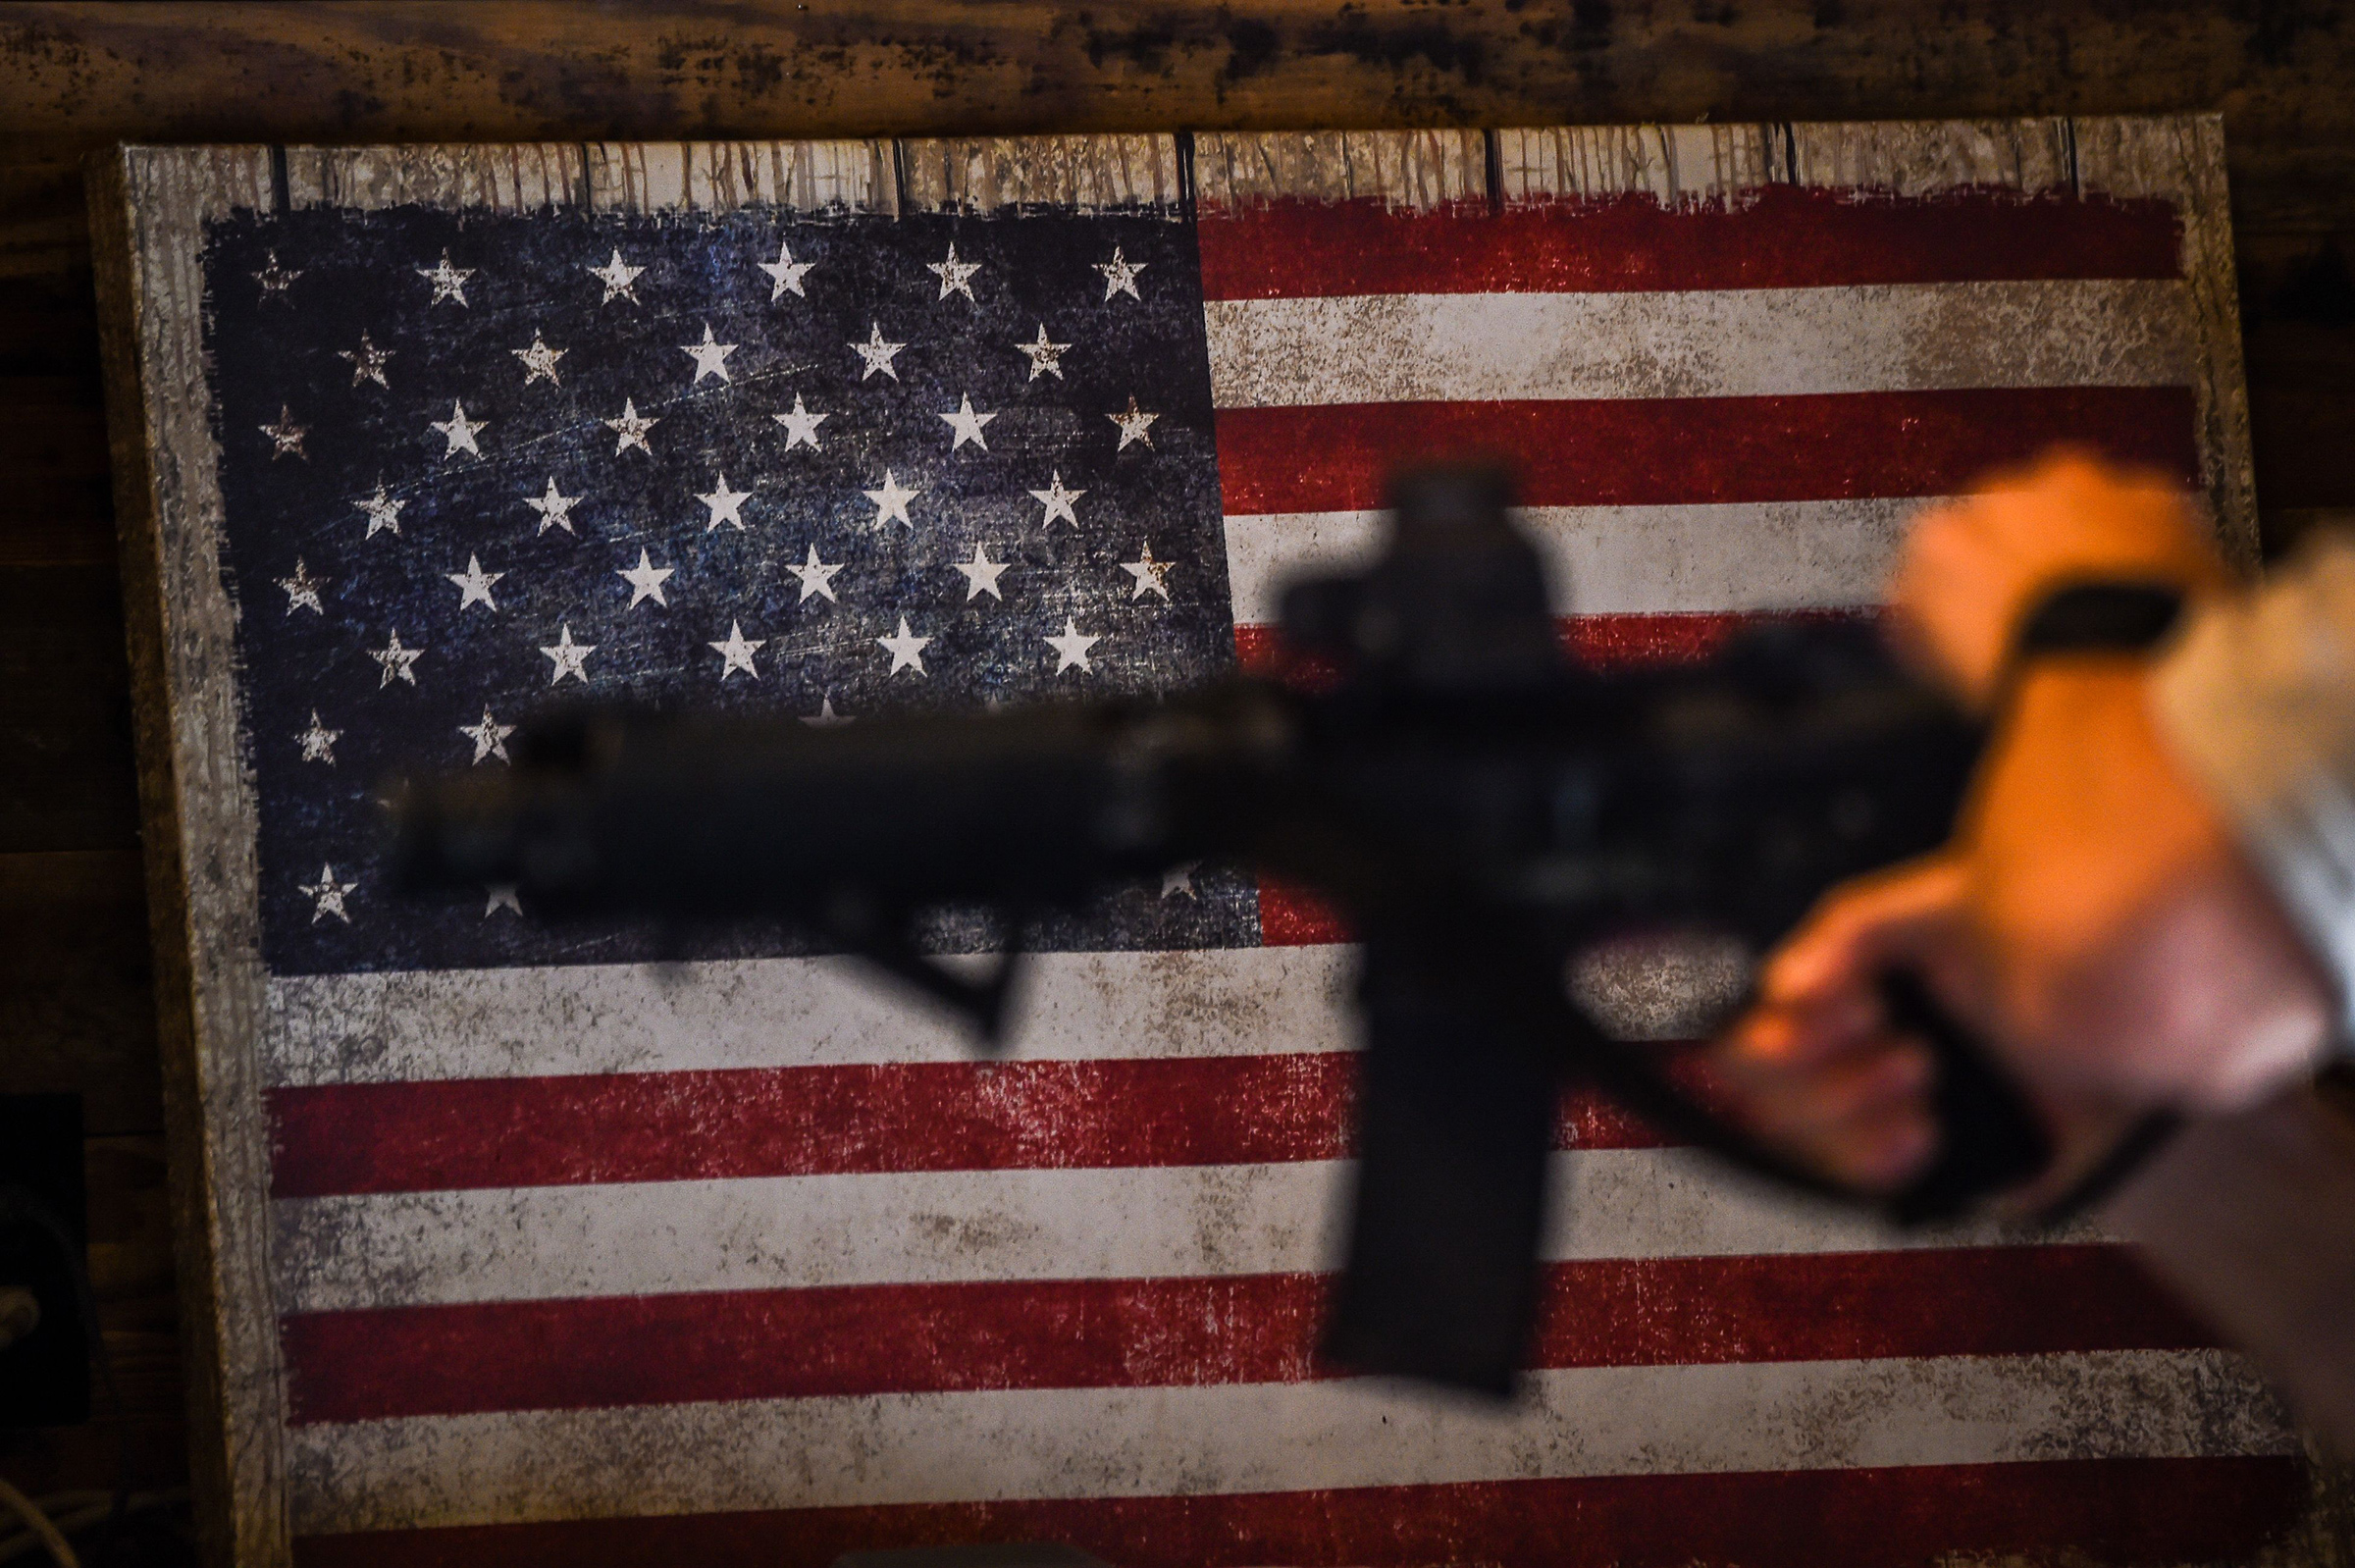 An instructor teaches handling of AR-15 semi-automatic rifles with a US flag in the background during a shooting course at Boondocks Firearms Academy in Jackson, Miss. on Sept. 26